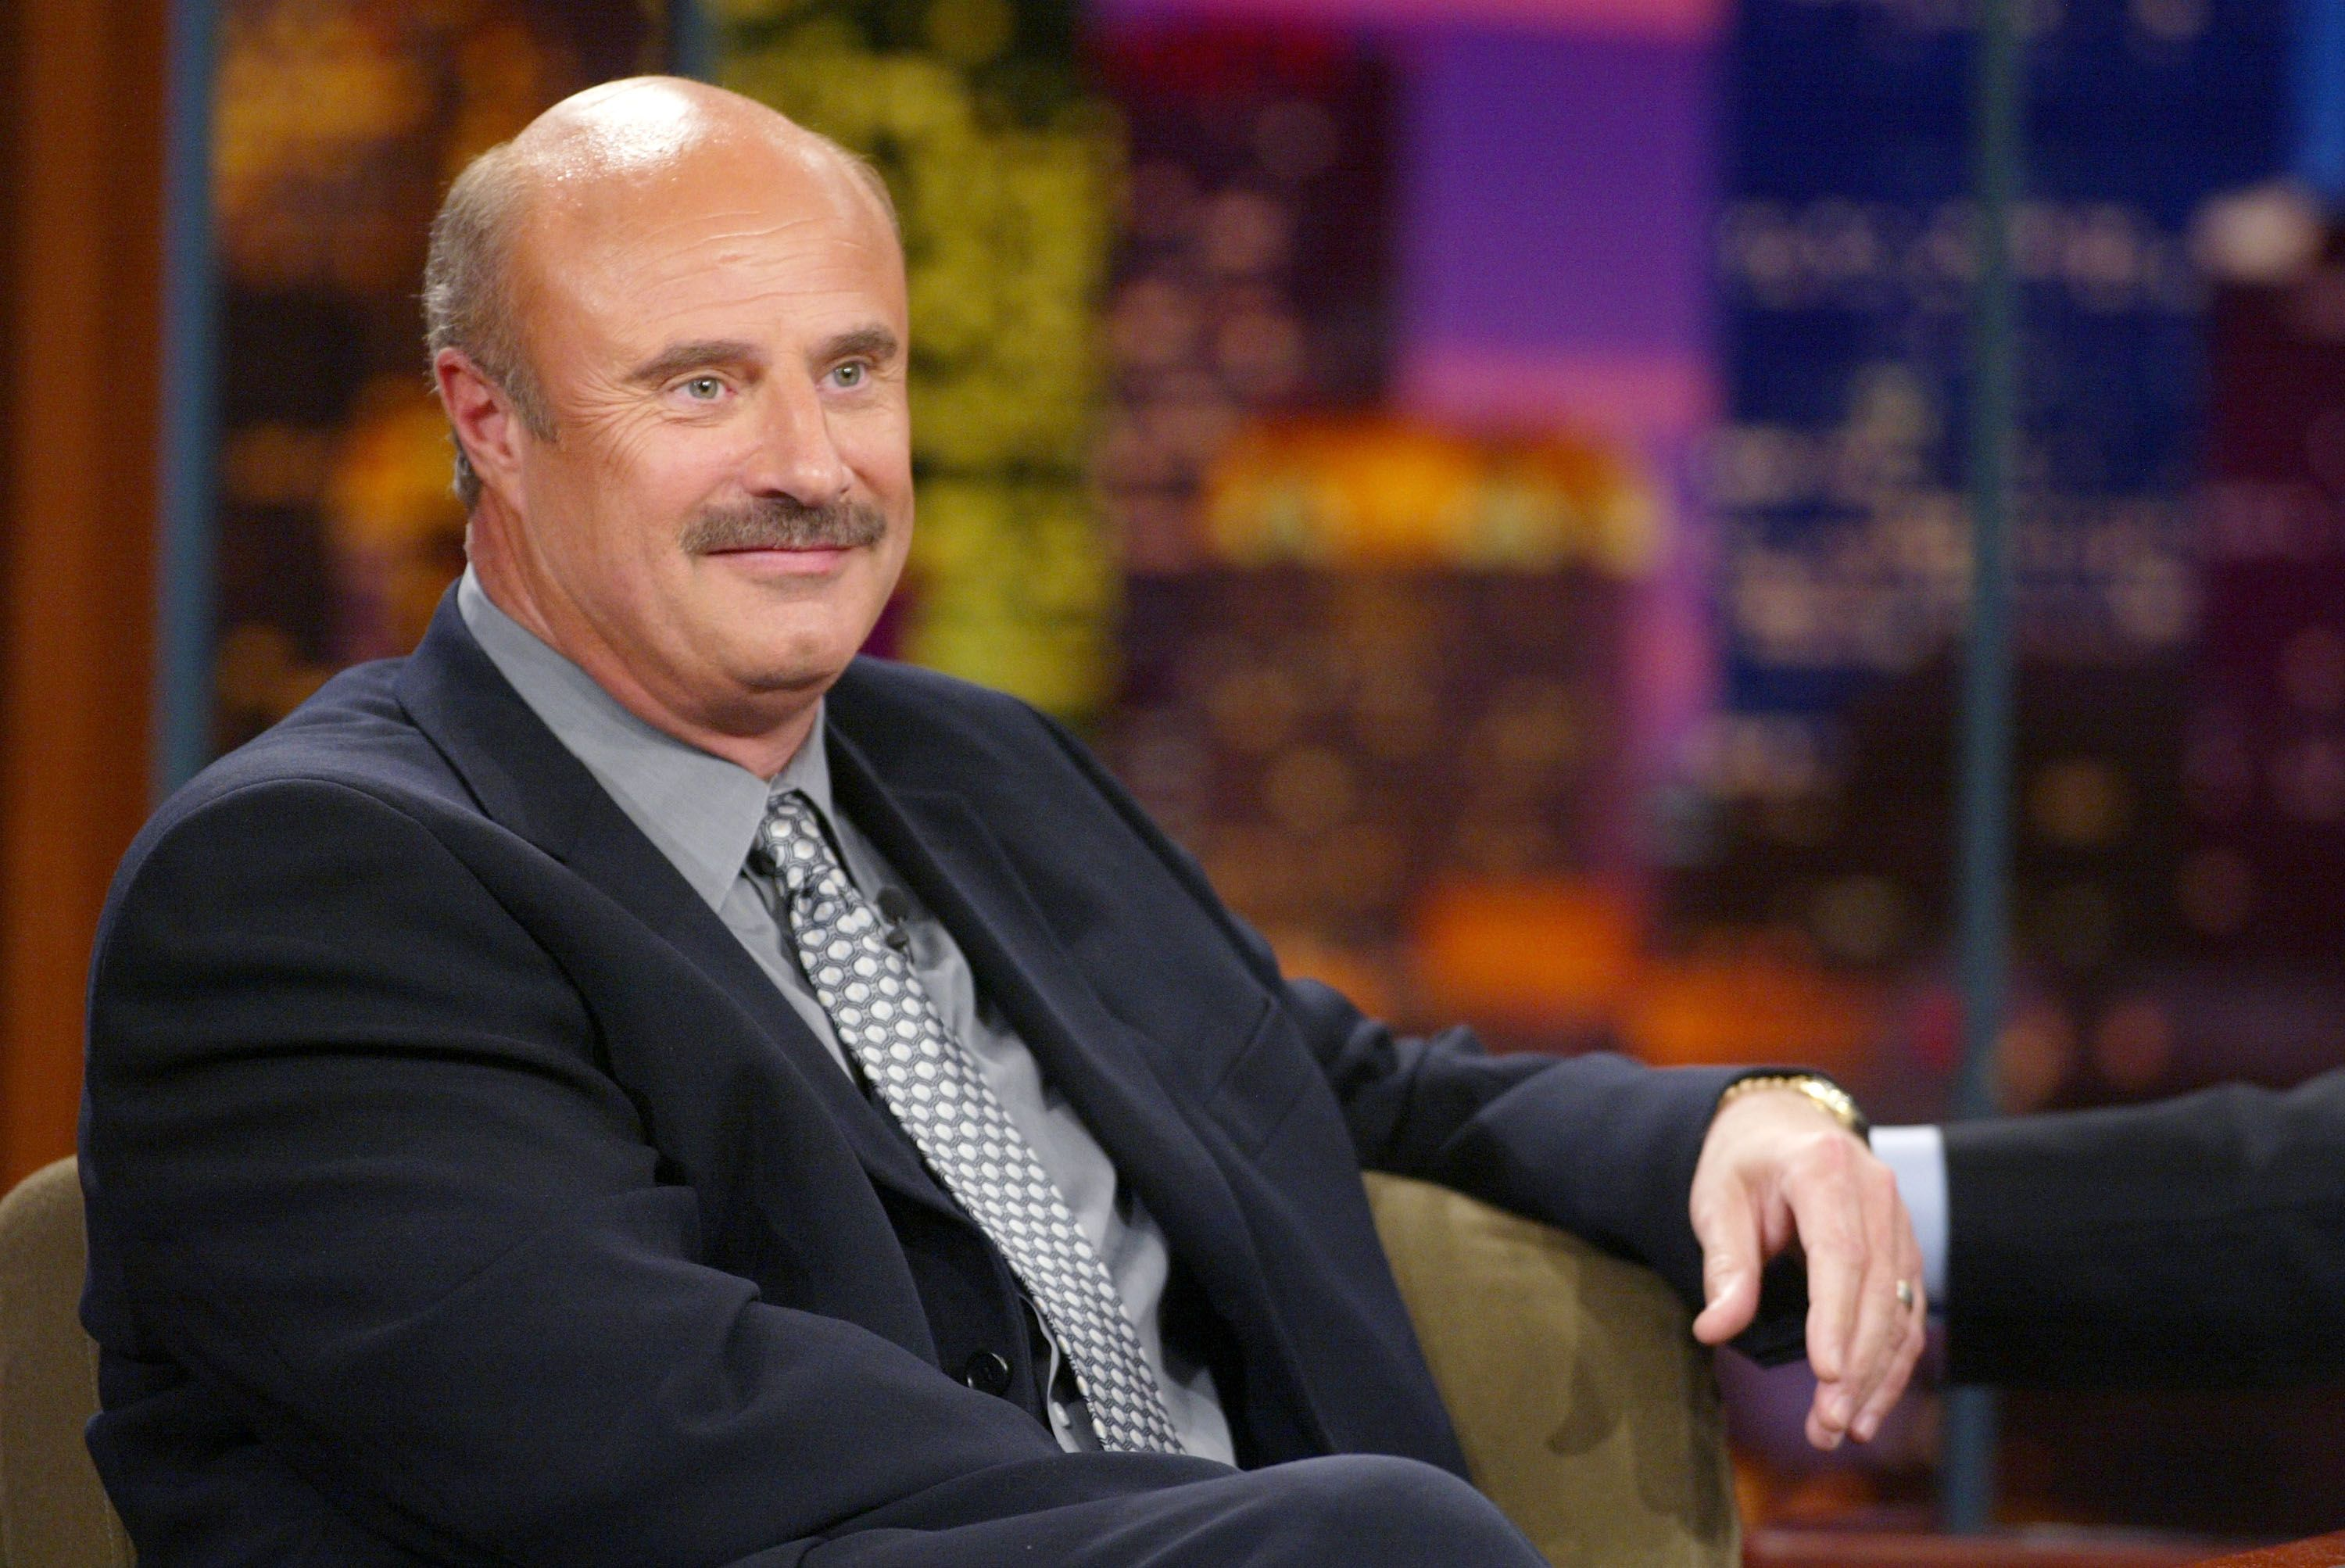 Dr Phil Guests Battling Addiction Were Allegedly Given Drugs And